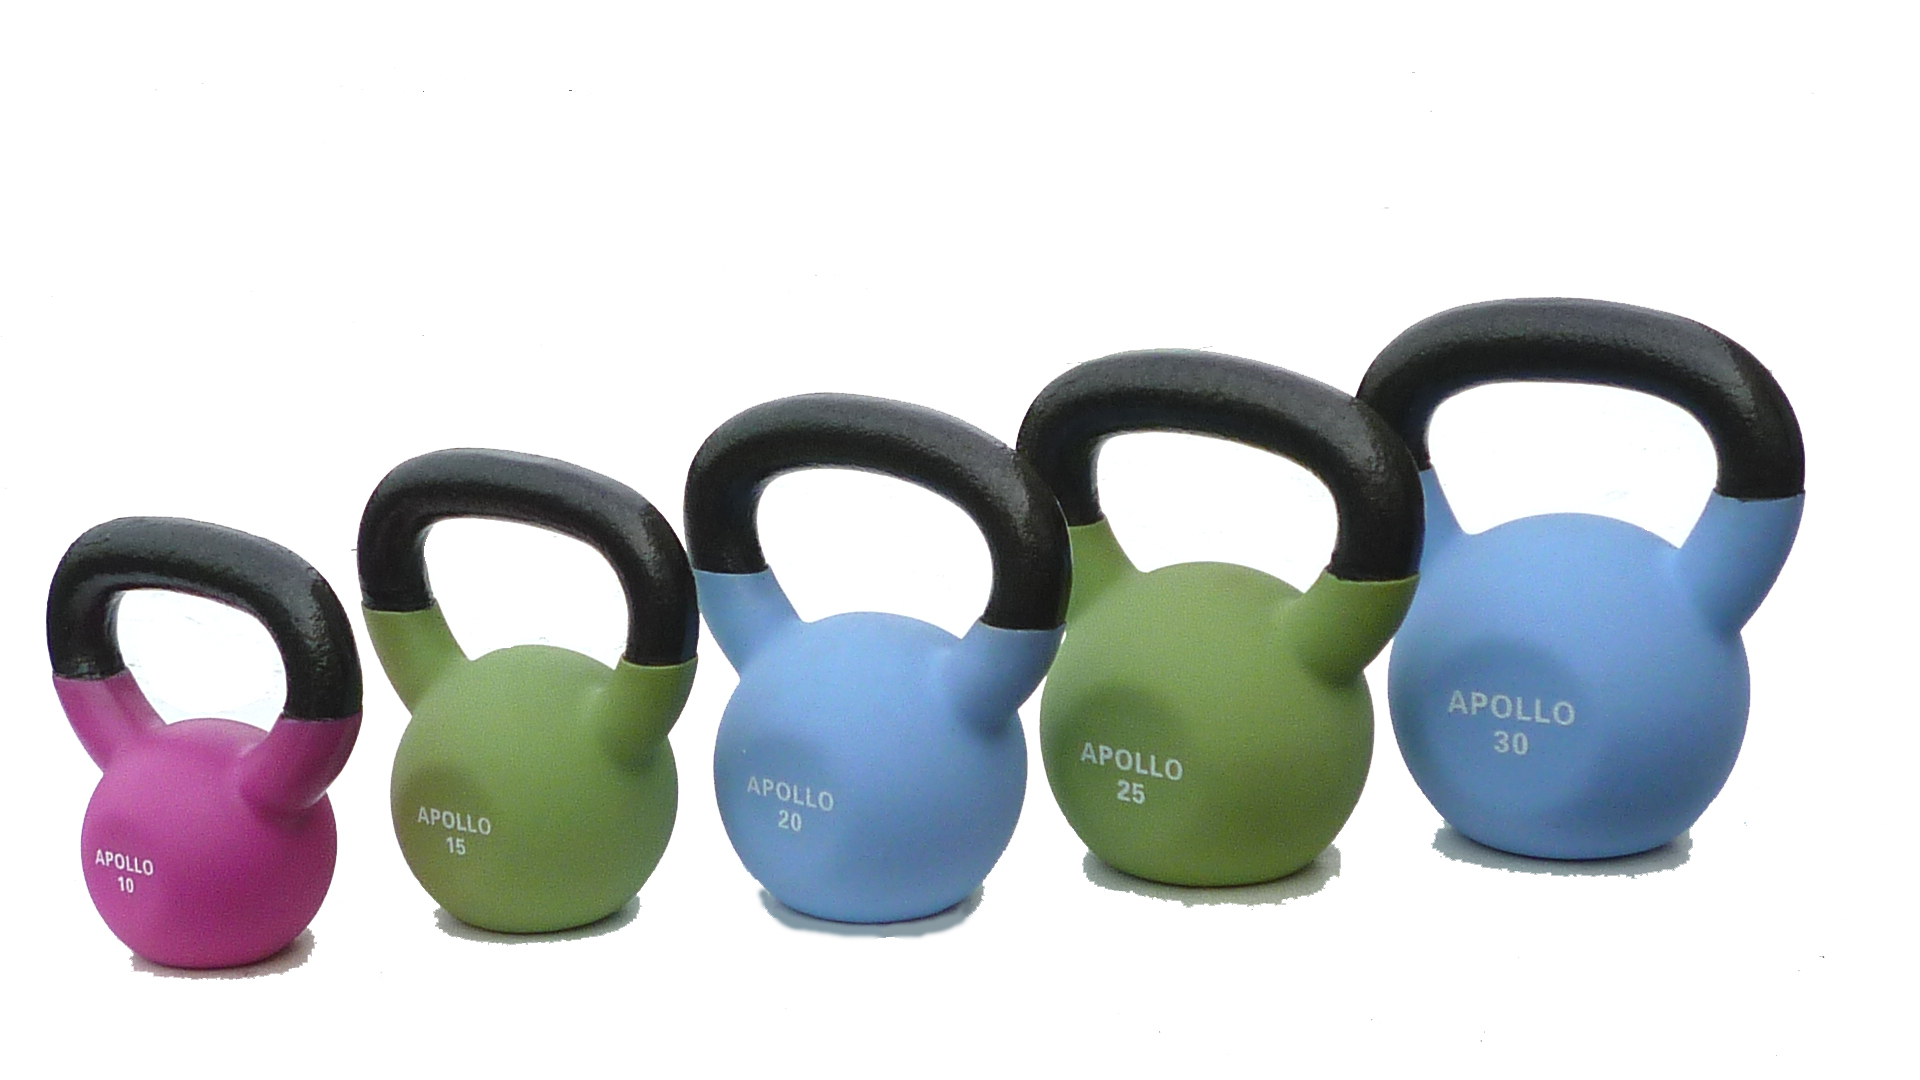 Basically, they are weights that are distributed differently than the traditional dumbbells.